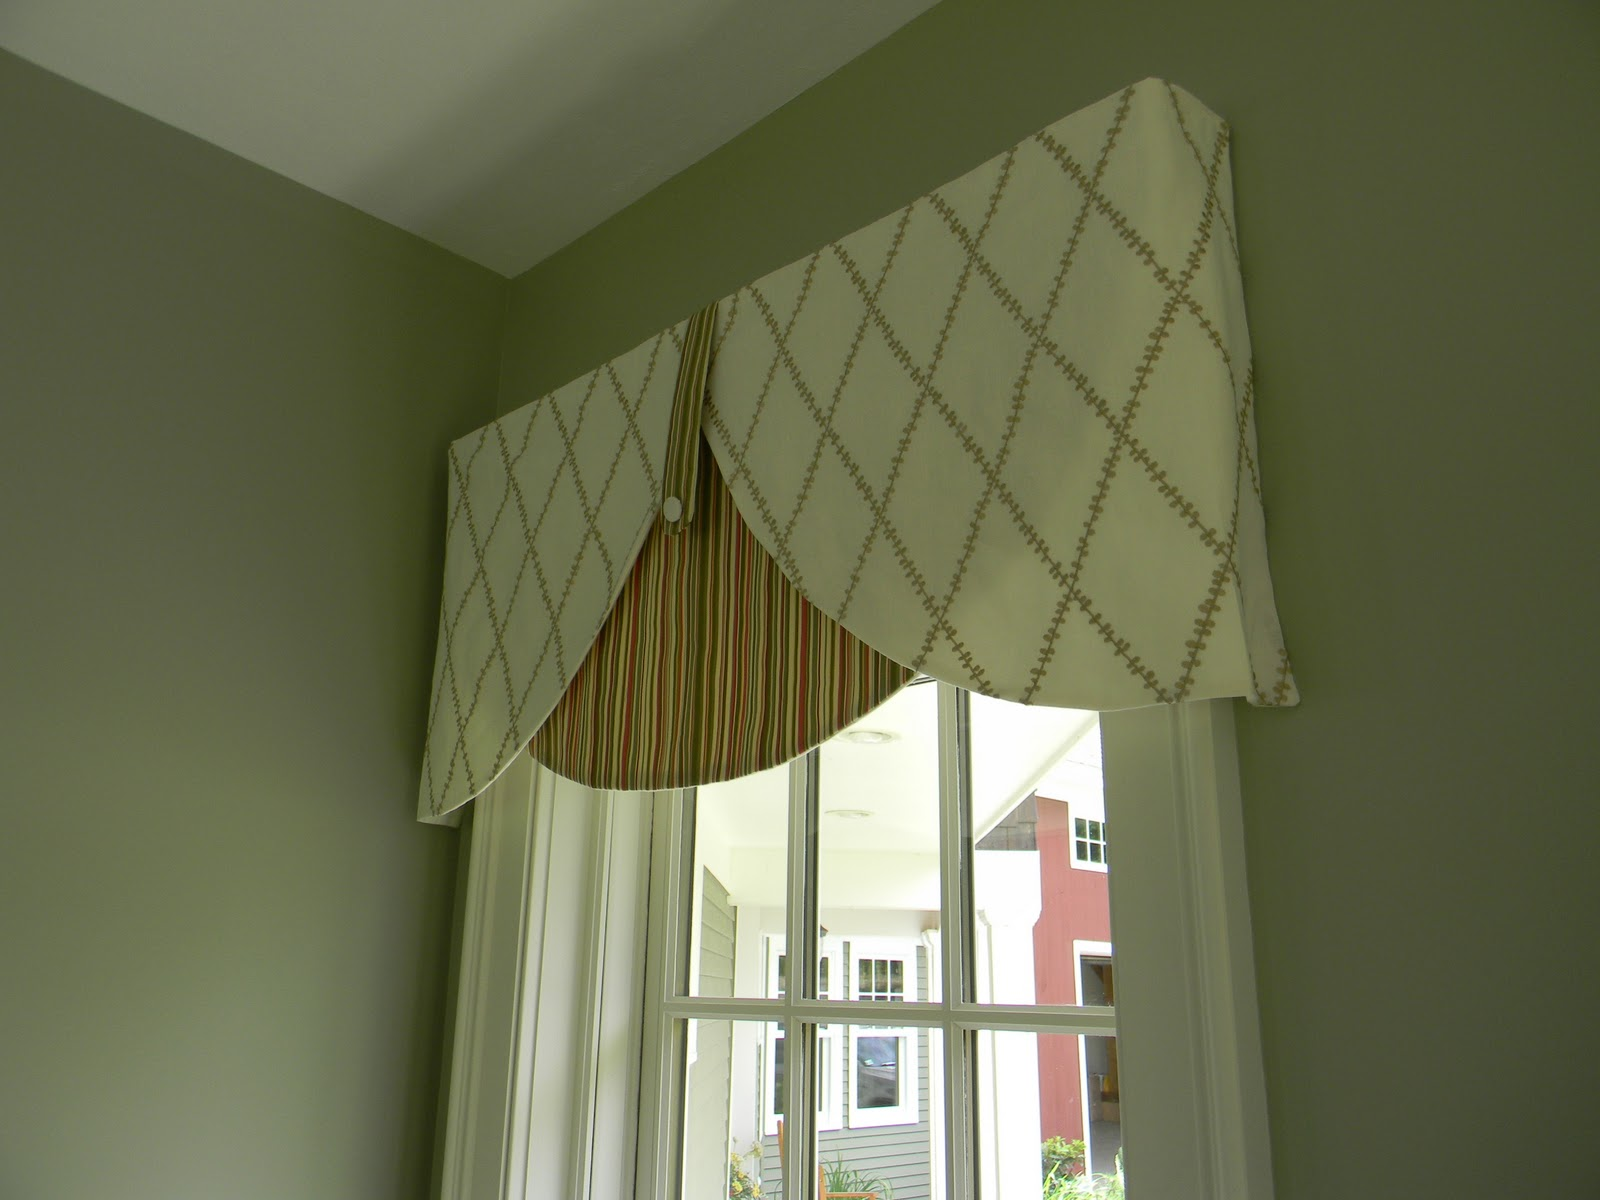 designer valances julie fergus asid nh interior designer custom valances 7913